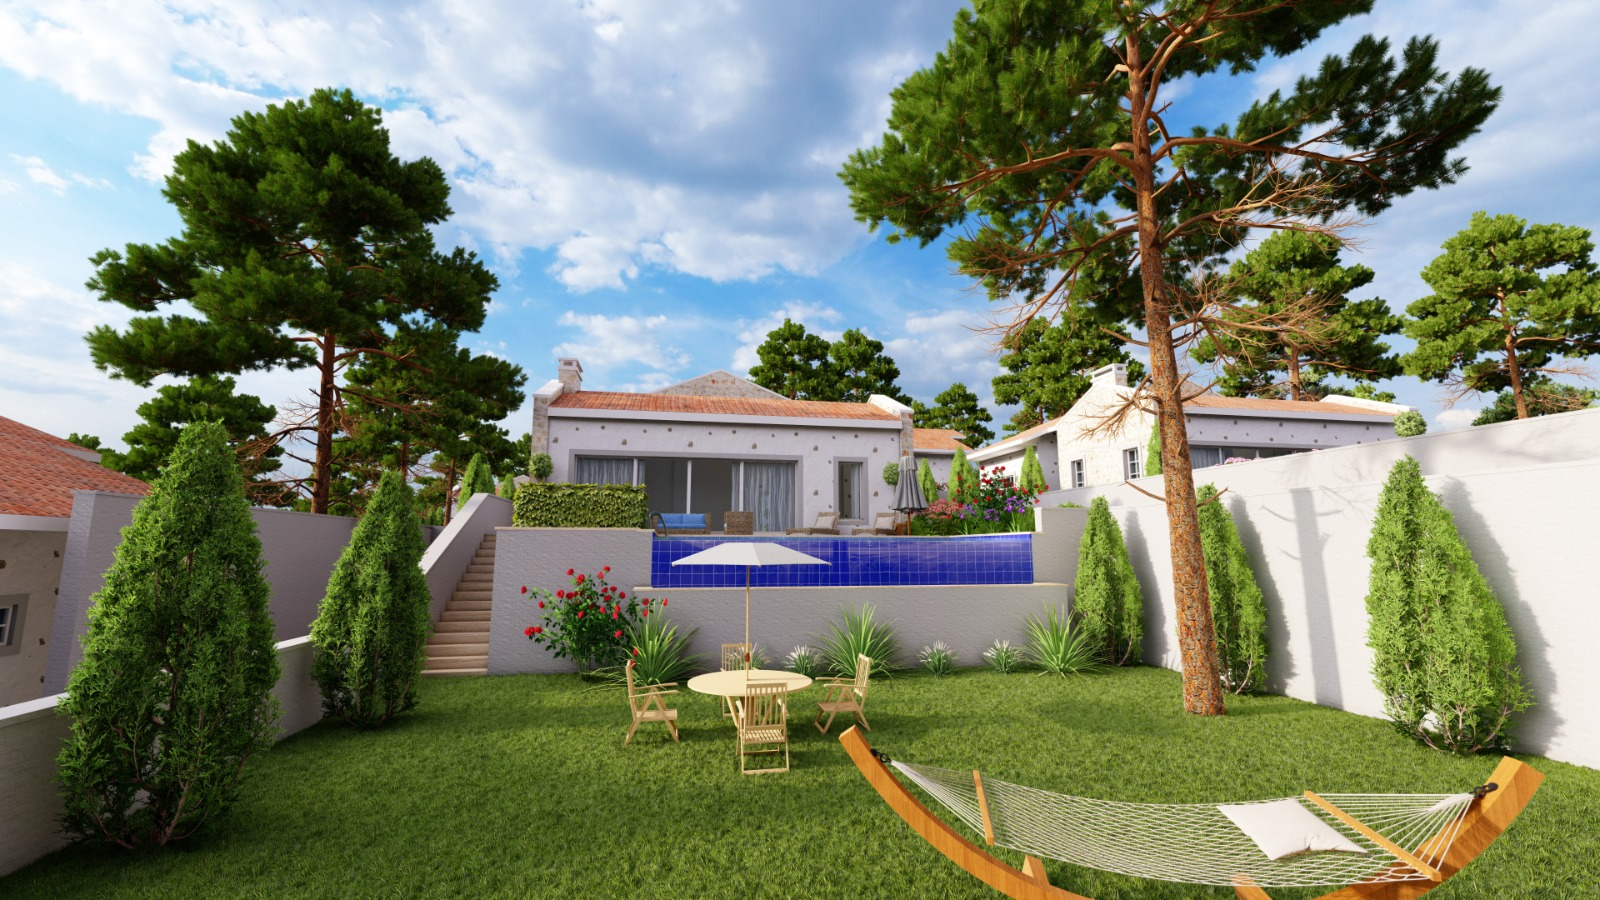 3 Bedroom Country Bungalows with Infinity Pool